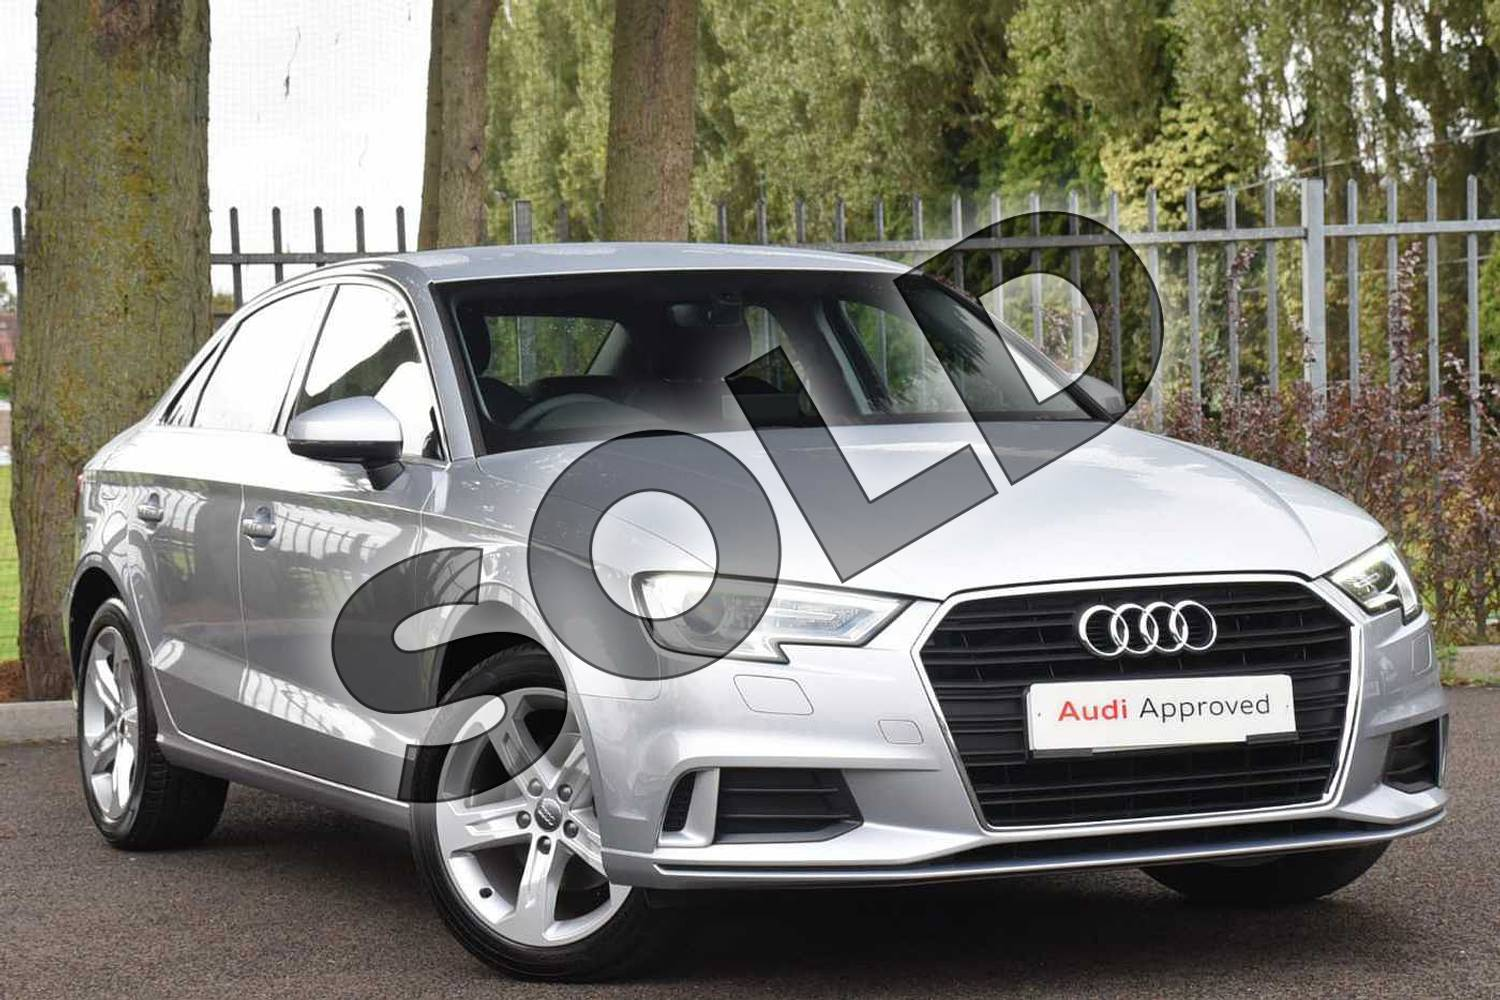 2018 Audi A3 Diesel Saloon Diesel 2.0 TDI Sport 4dr S Tronic (7 Speed) in Floret Silver Metallic at Coventry Audi